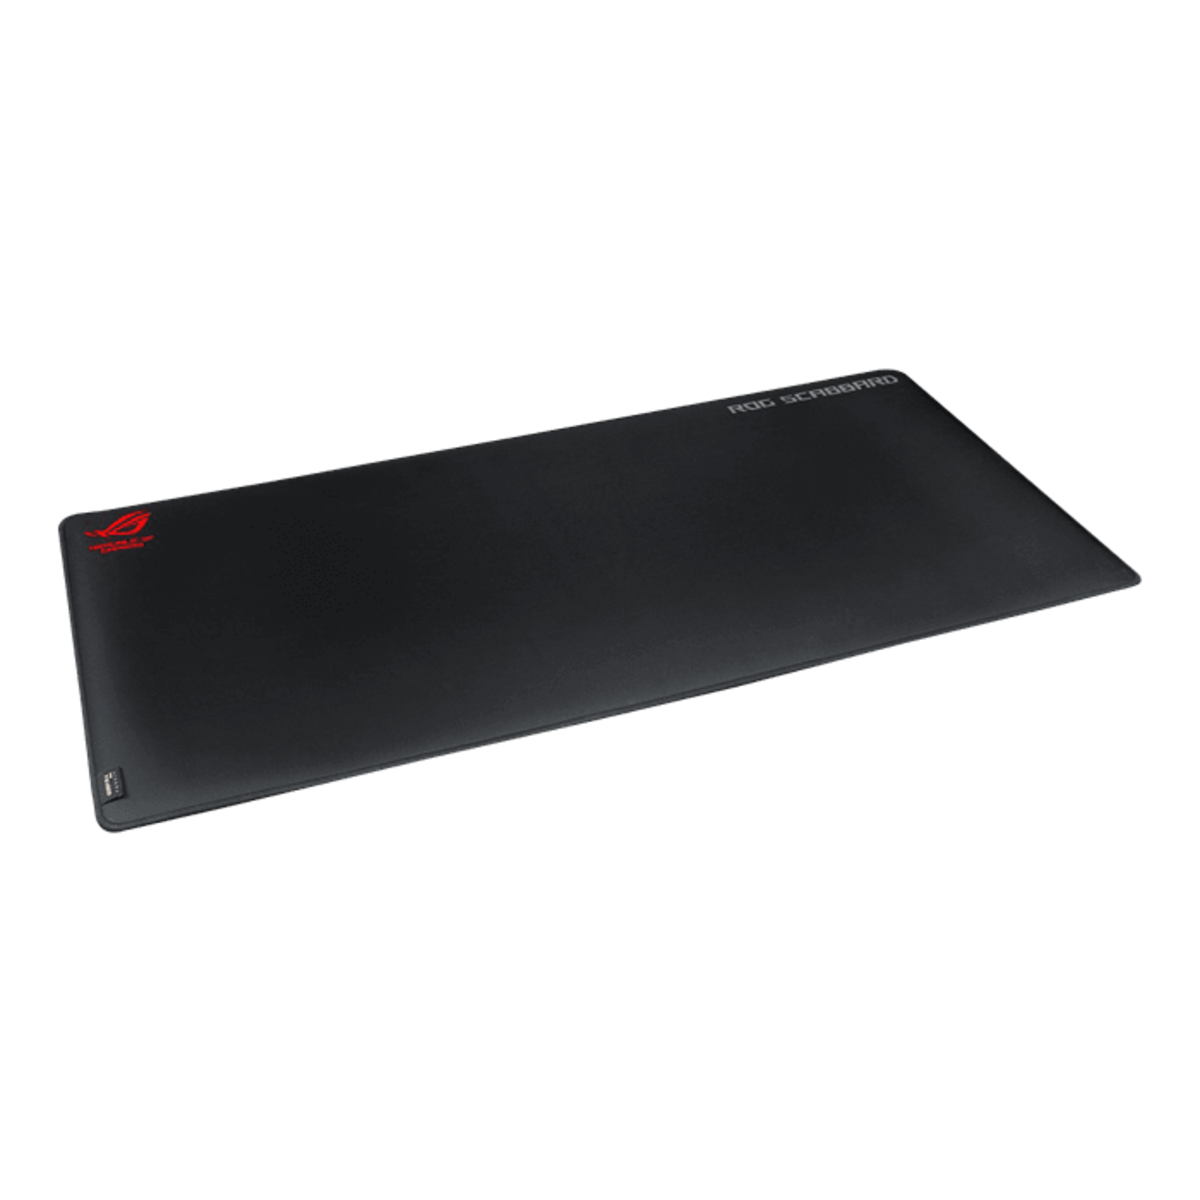 ASUS ROG Scabbard Black Gaming mouse pad